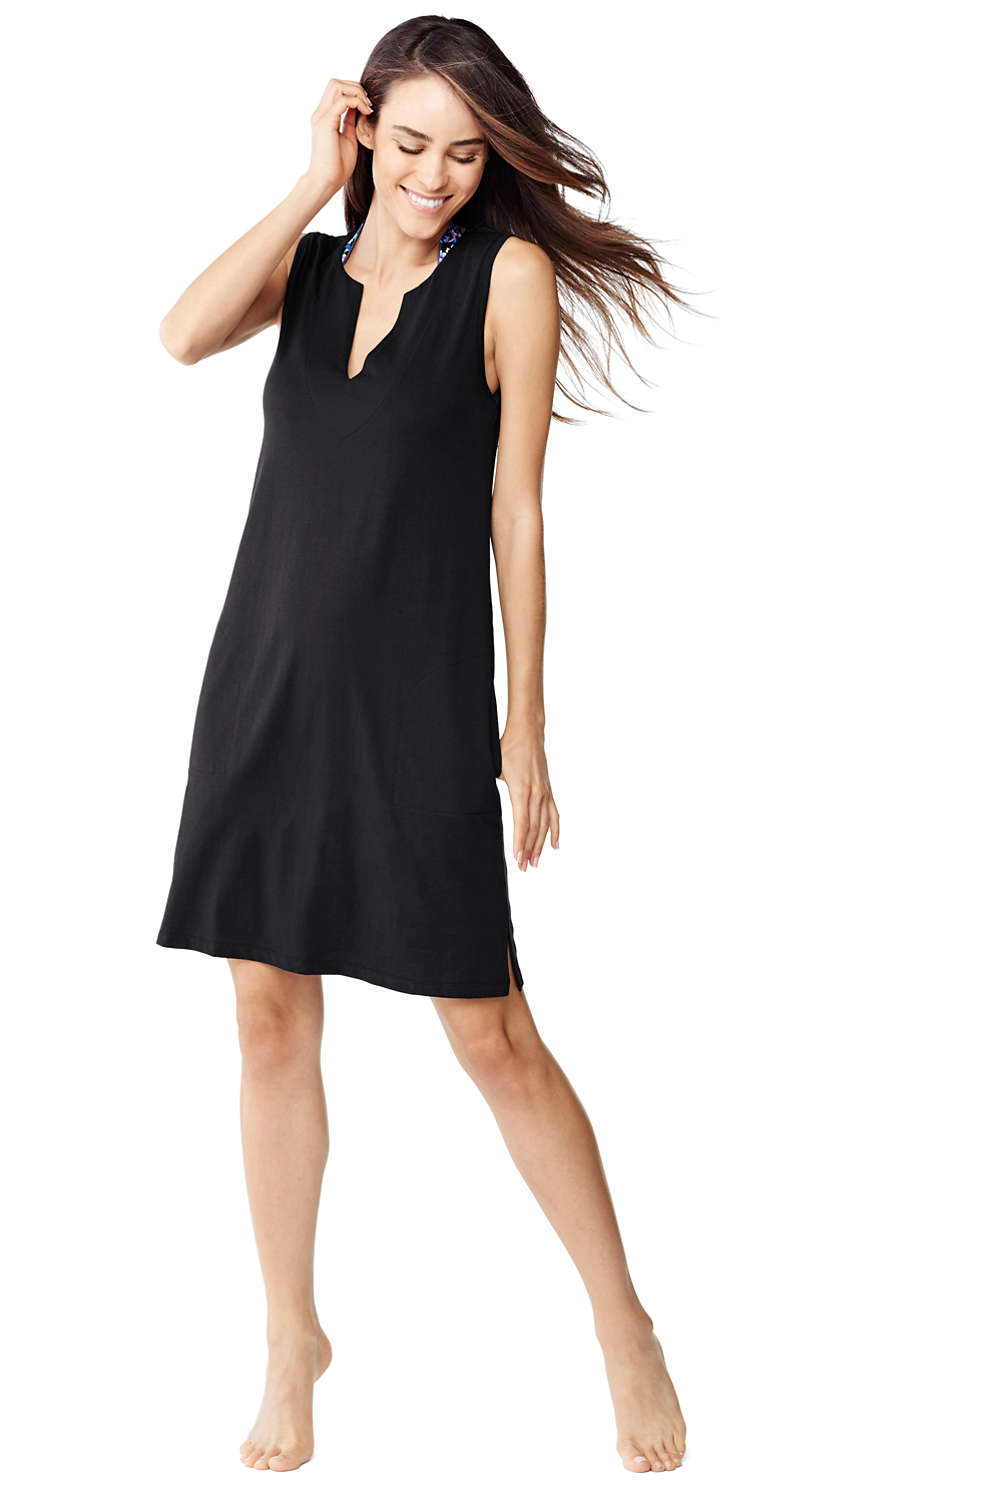 7a01ae9d3616f Women s Cotton Jersey Sleeveless Tunic Dress Swim Cover-up. Item   438380AH1. View Fullscreen